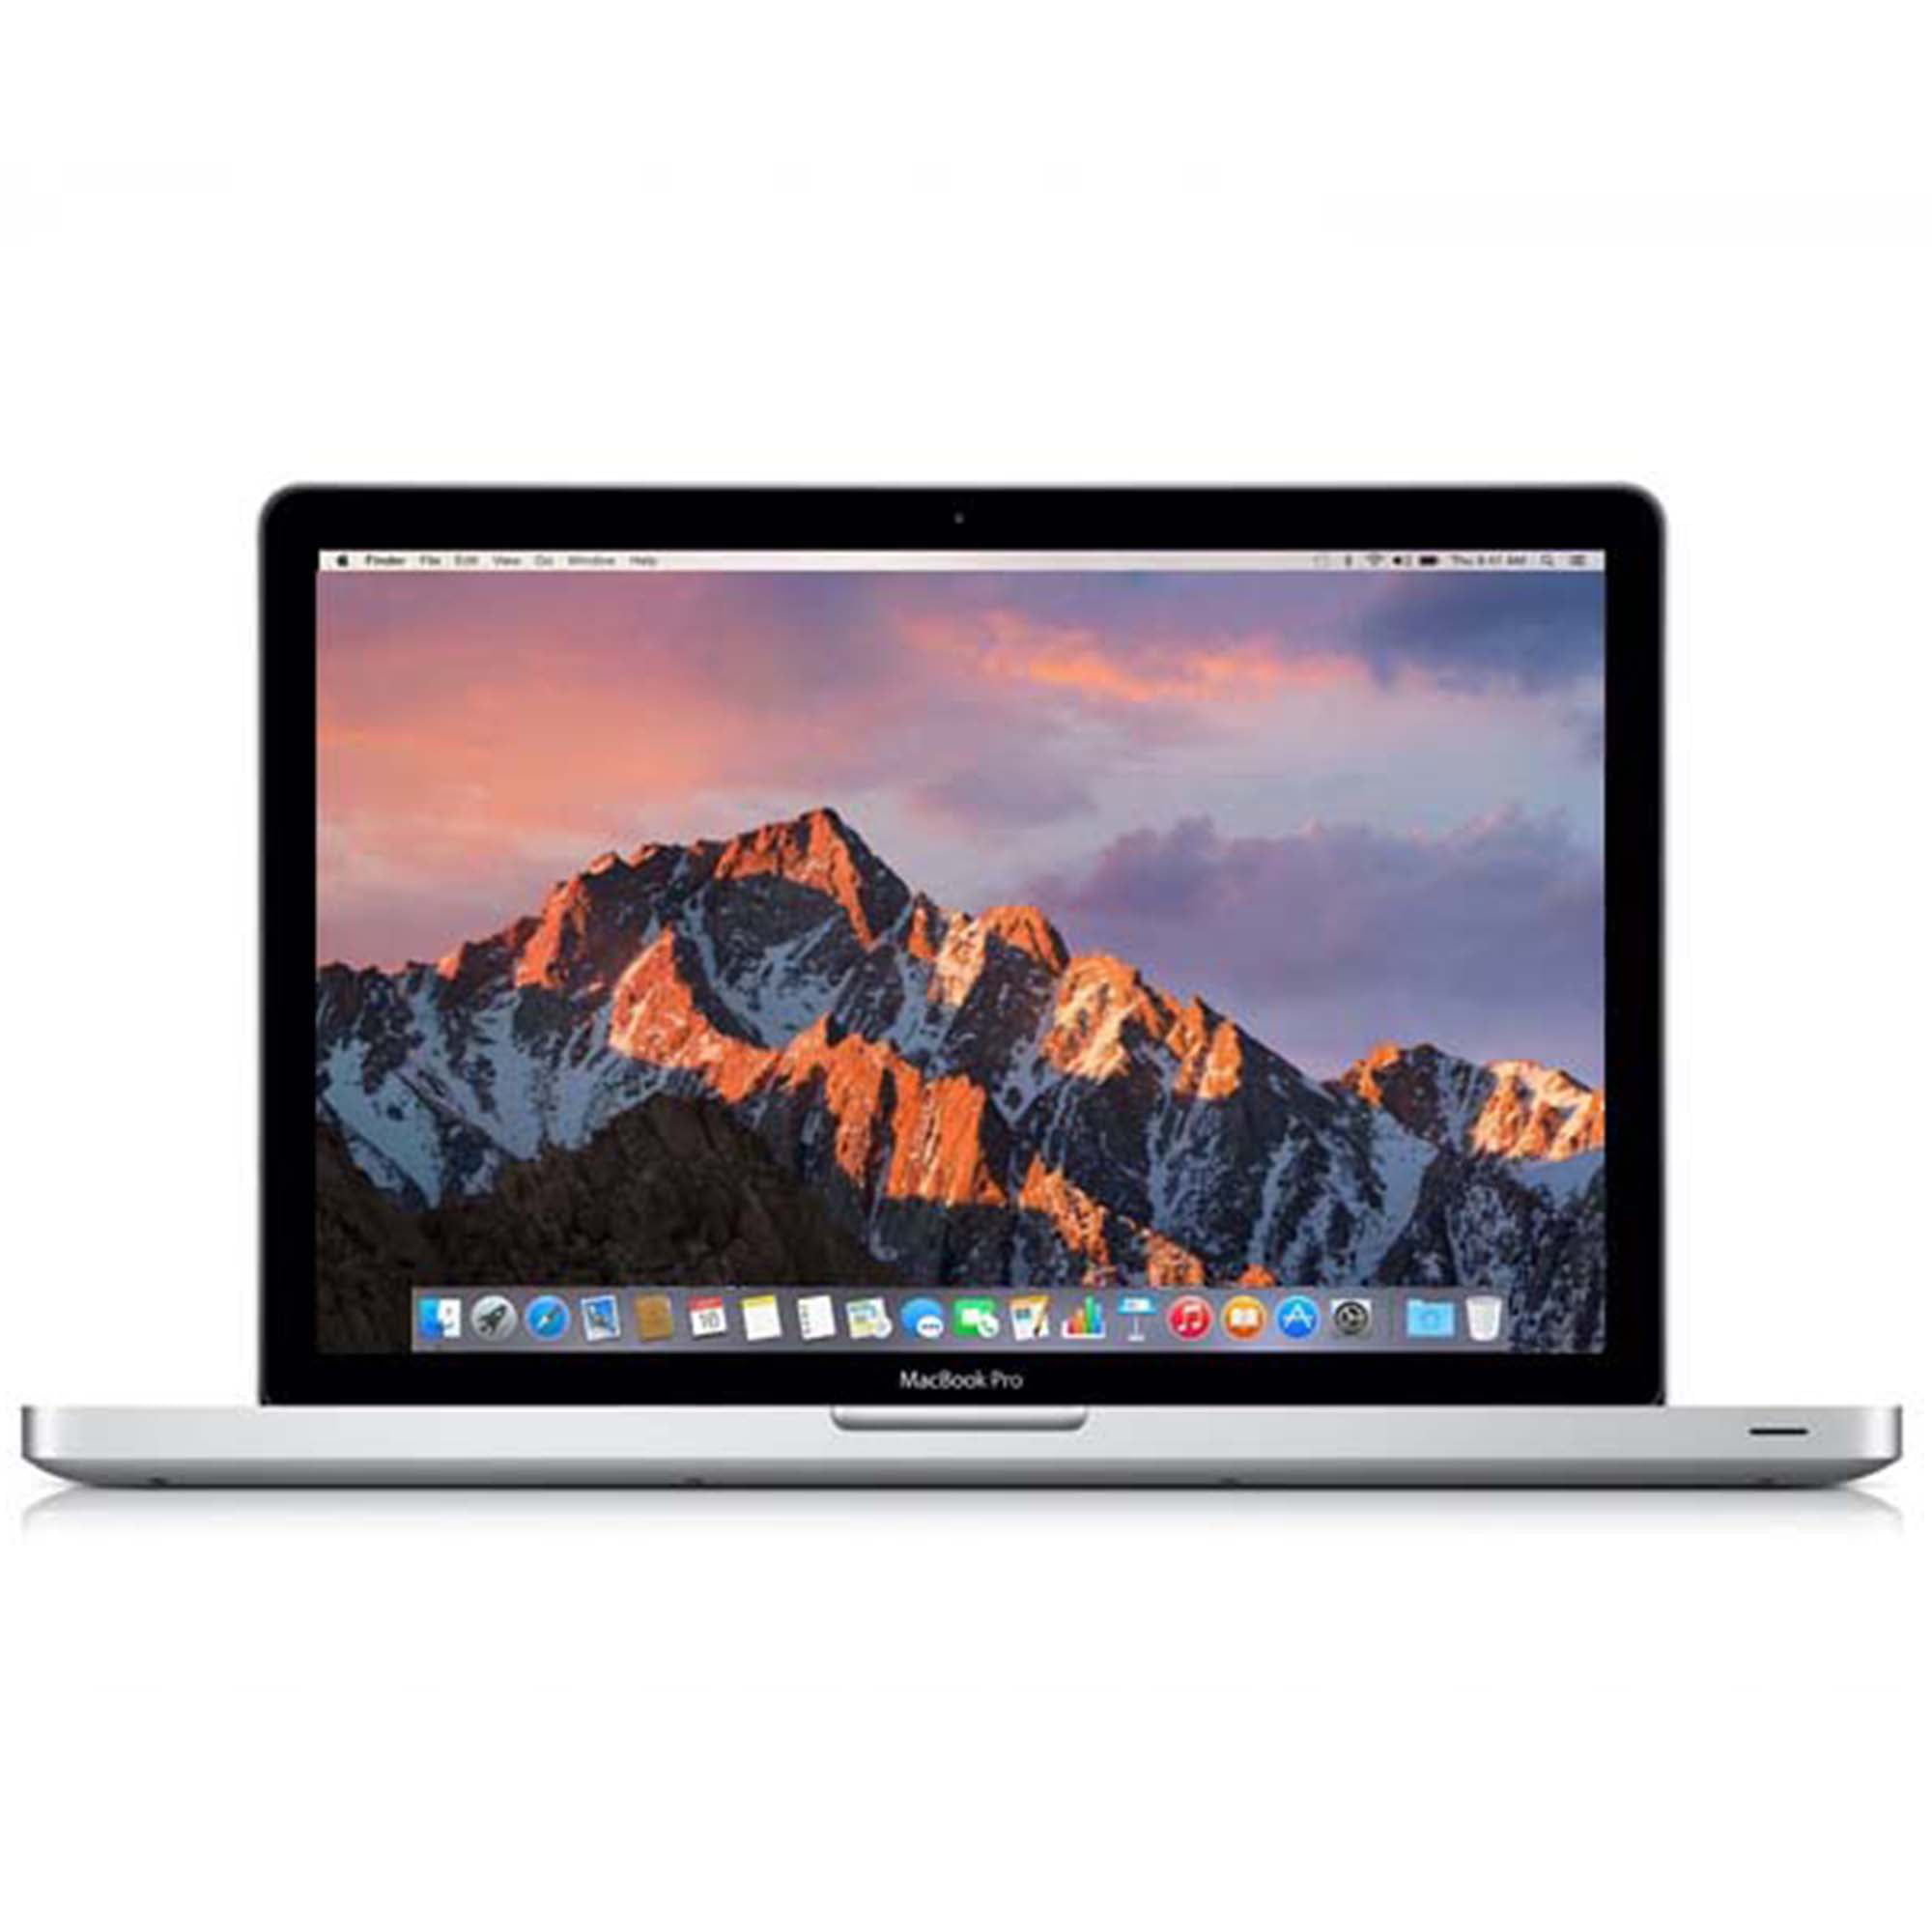 Apple MacBook Pro 15.4-Inch Laptop Intel QuadCore i7 2.0GHz   16GB DDR3 Memory   1TB SSHD (Solid State Hybrid) Drive... by Apple